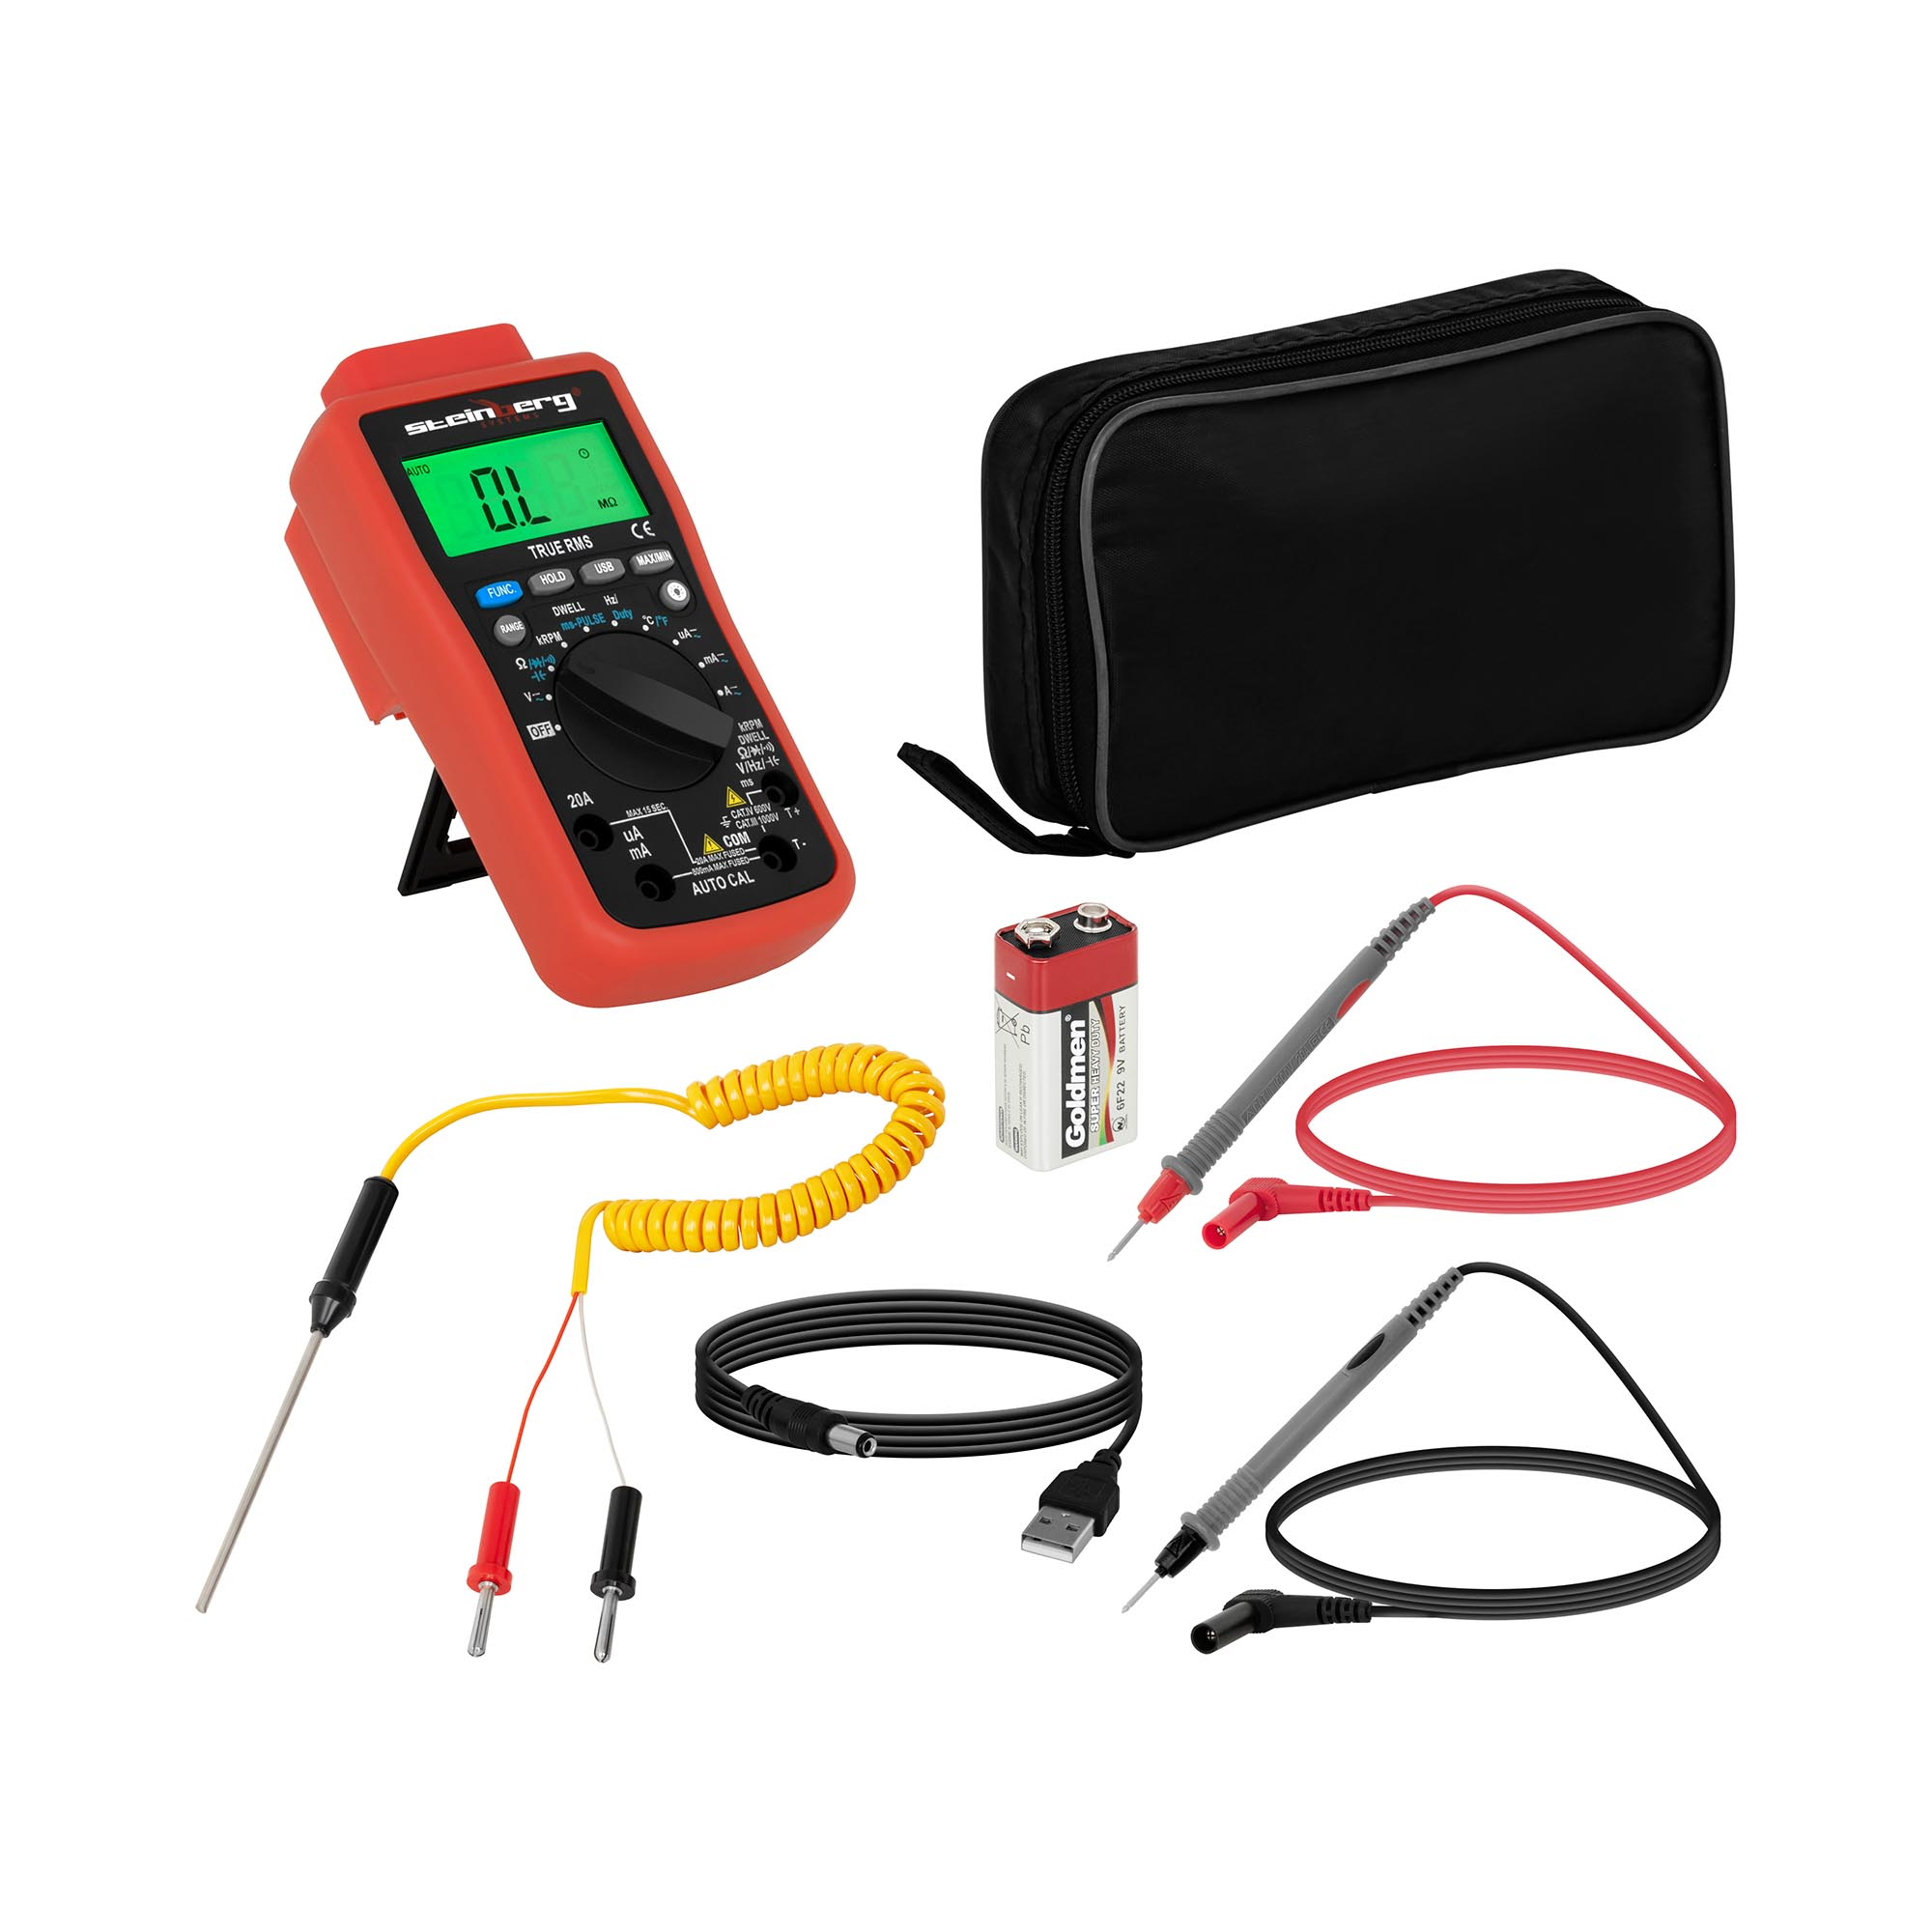 Steinberg Systems Multimeter - 6.000 Counts - Temperaturmessung - TrueRMS - USB SBS-DMB-1000TR